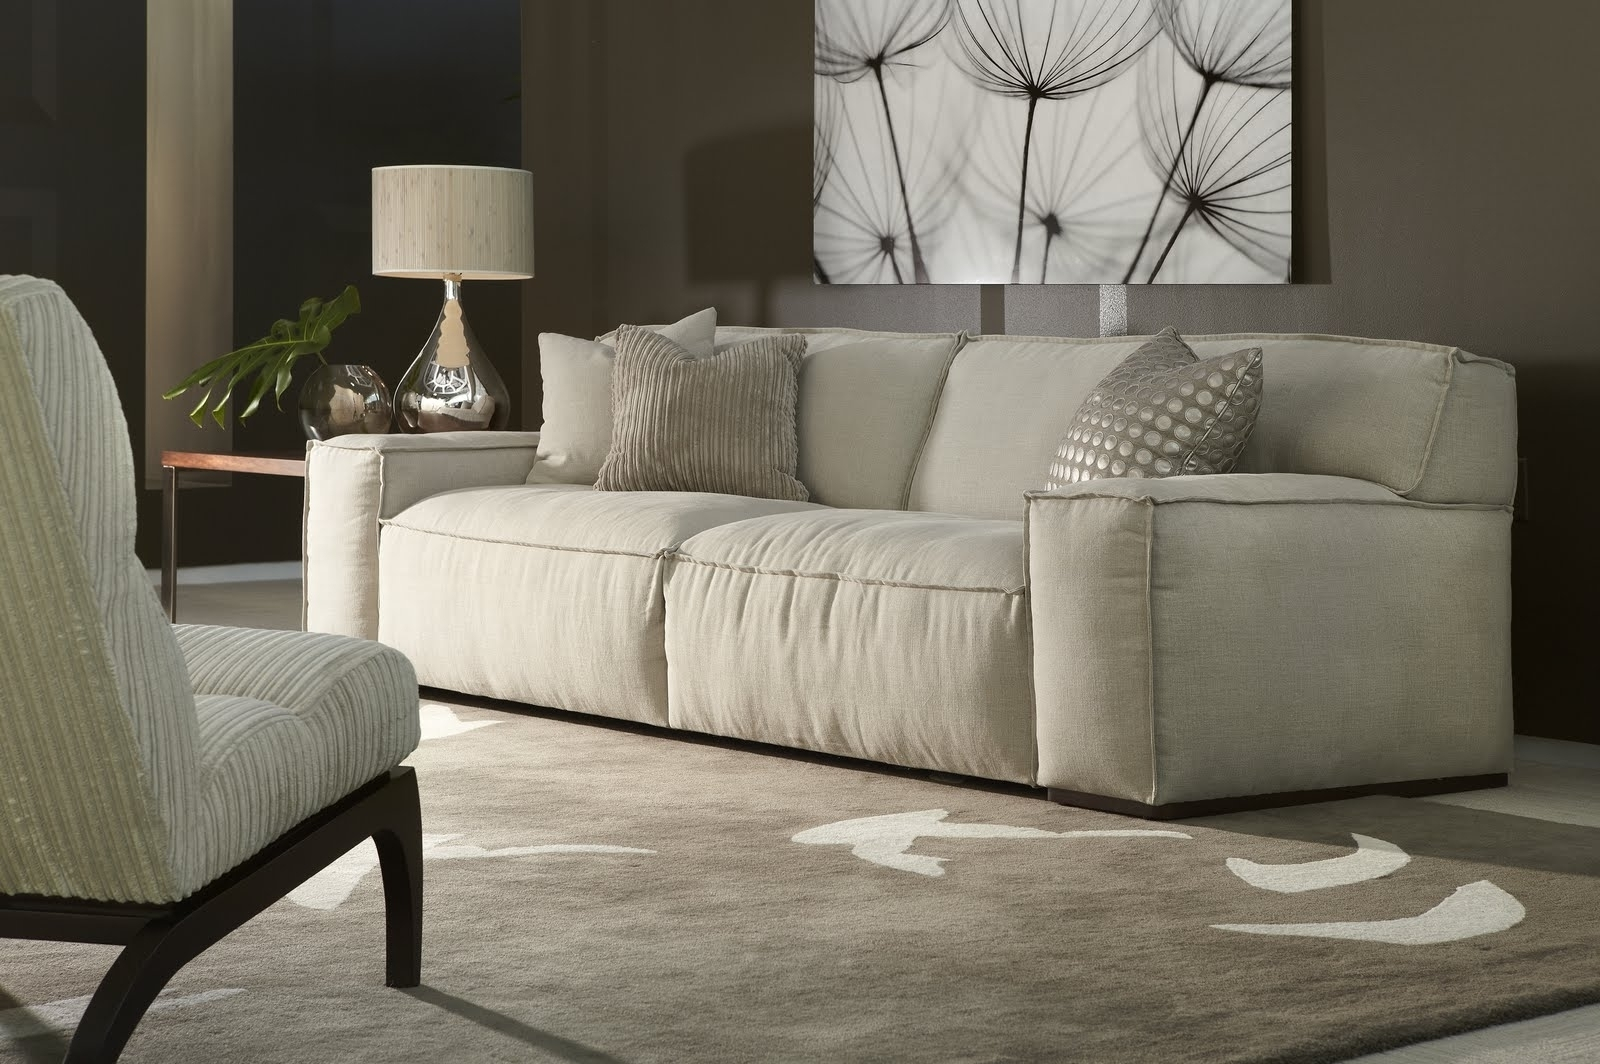 Down Filled Sectional Sofas For Recent Sectional Sofa Design: Top Design Down Filled Sectional Sofa Down (View 2 of 20)